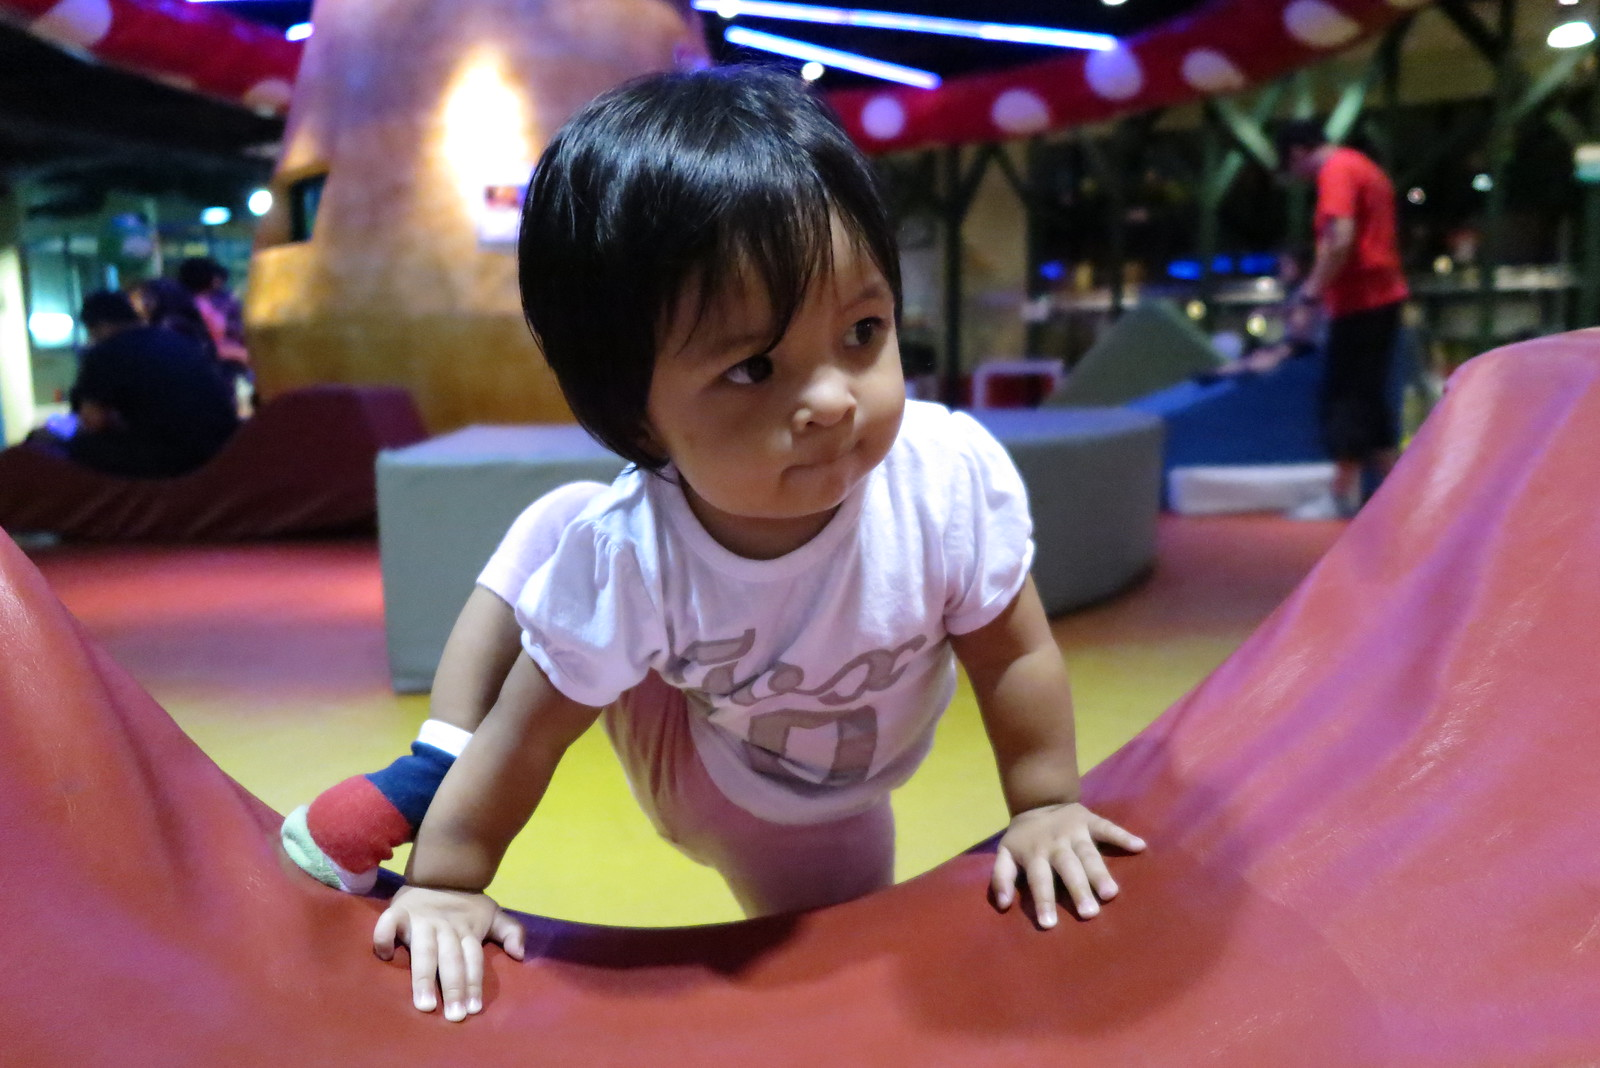 17 Aug 2014 - Play at DTE Explorer Kids